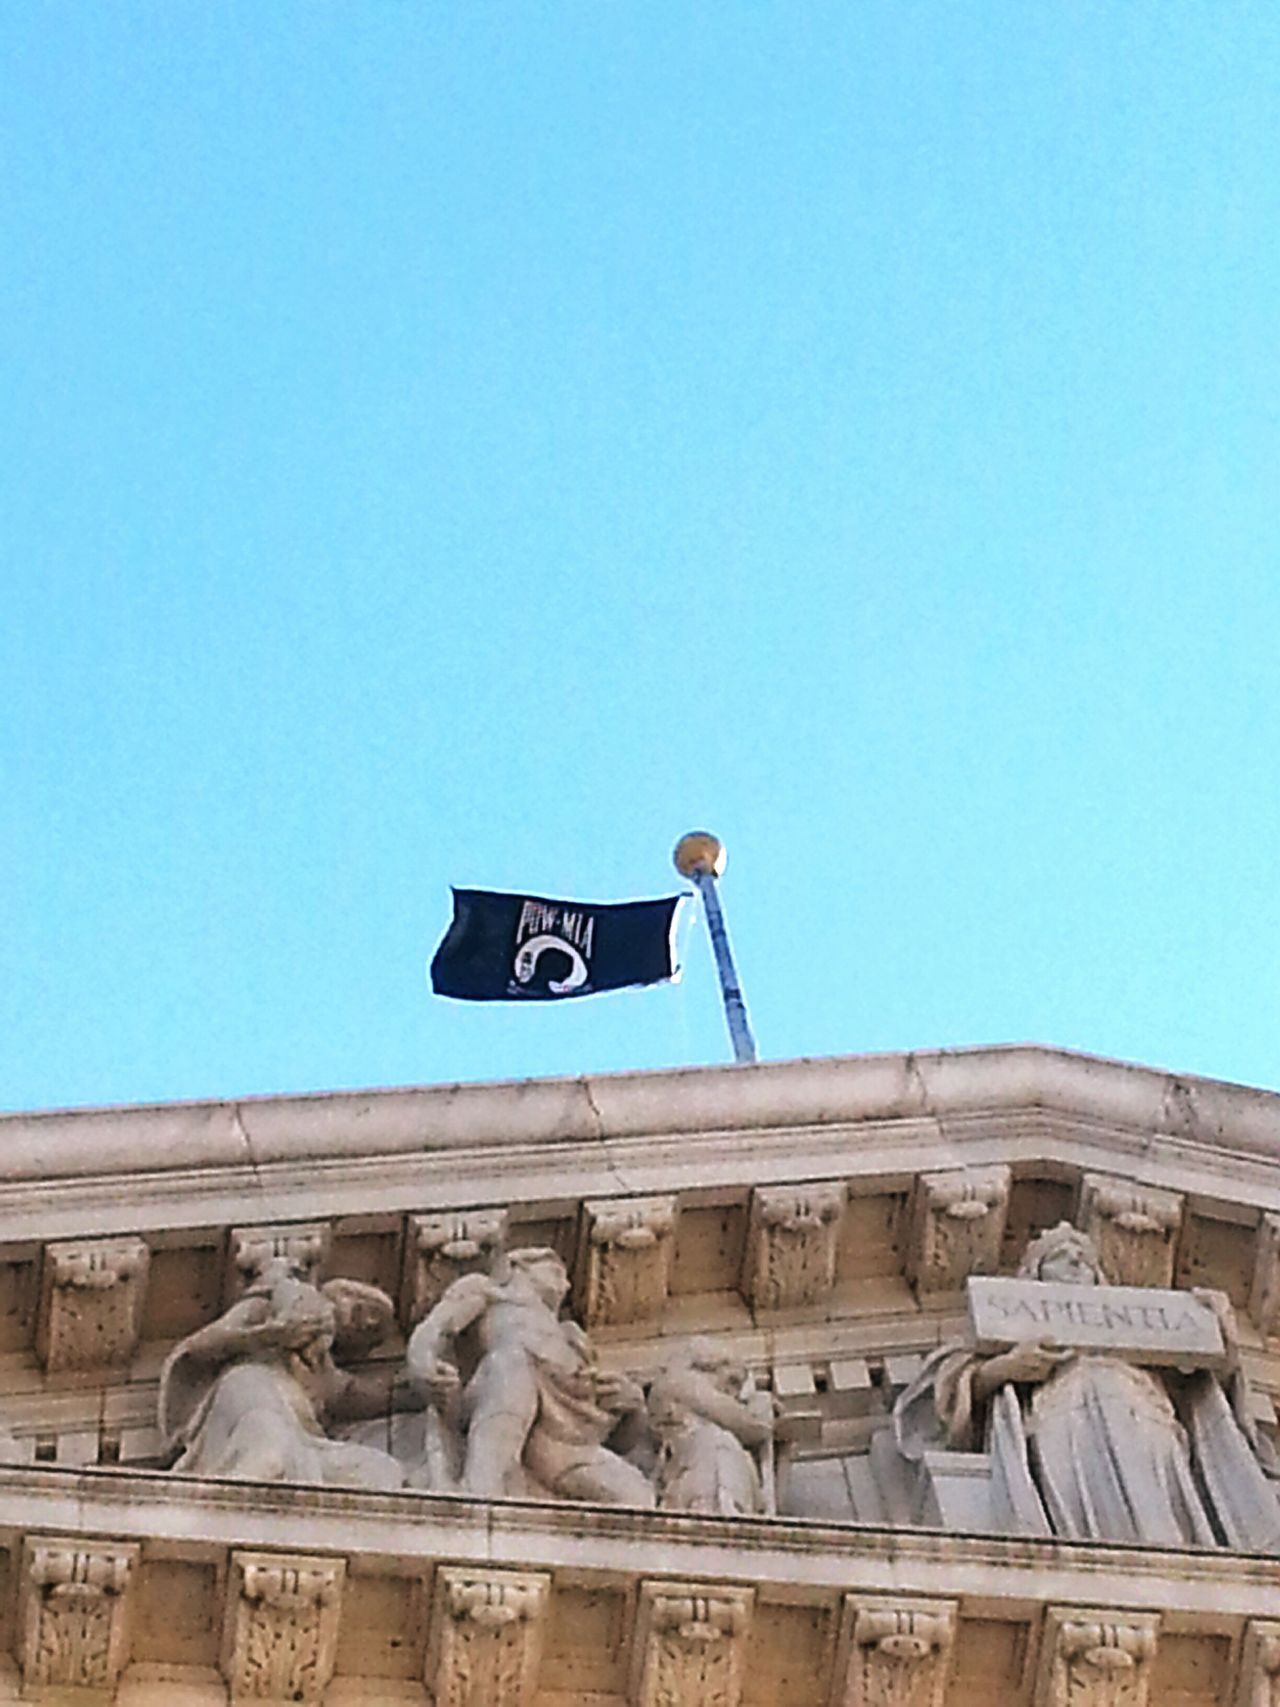 POW MIA Flag Negative Space Madison Wisconsin Capital Building